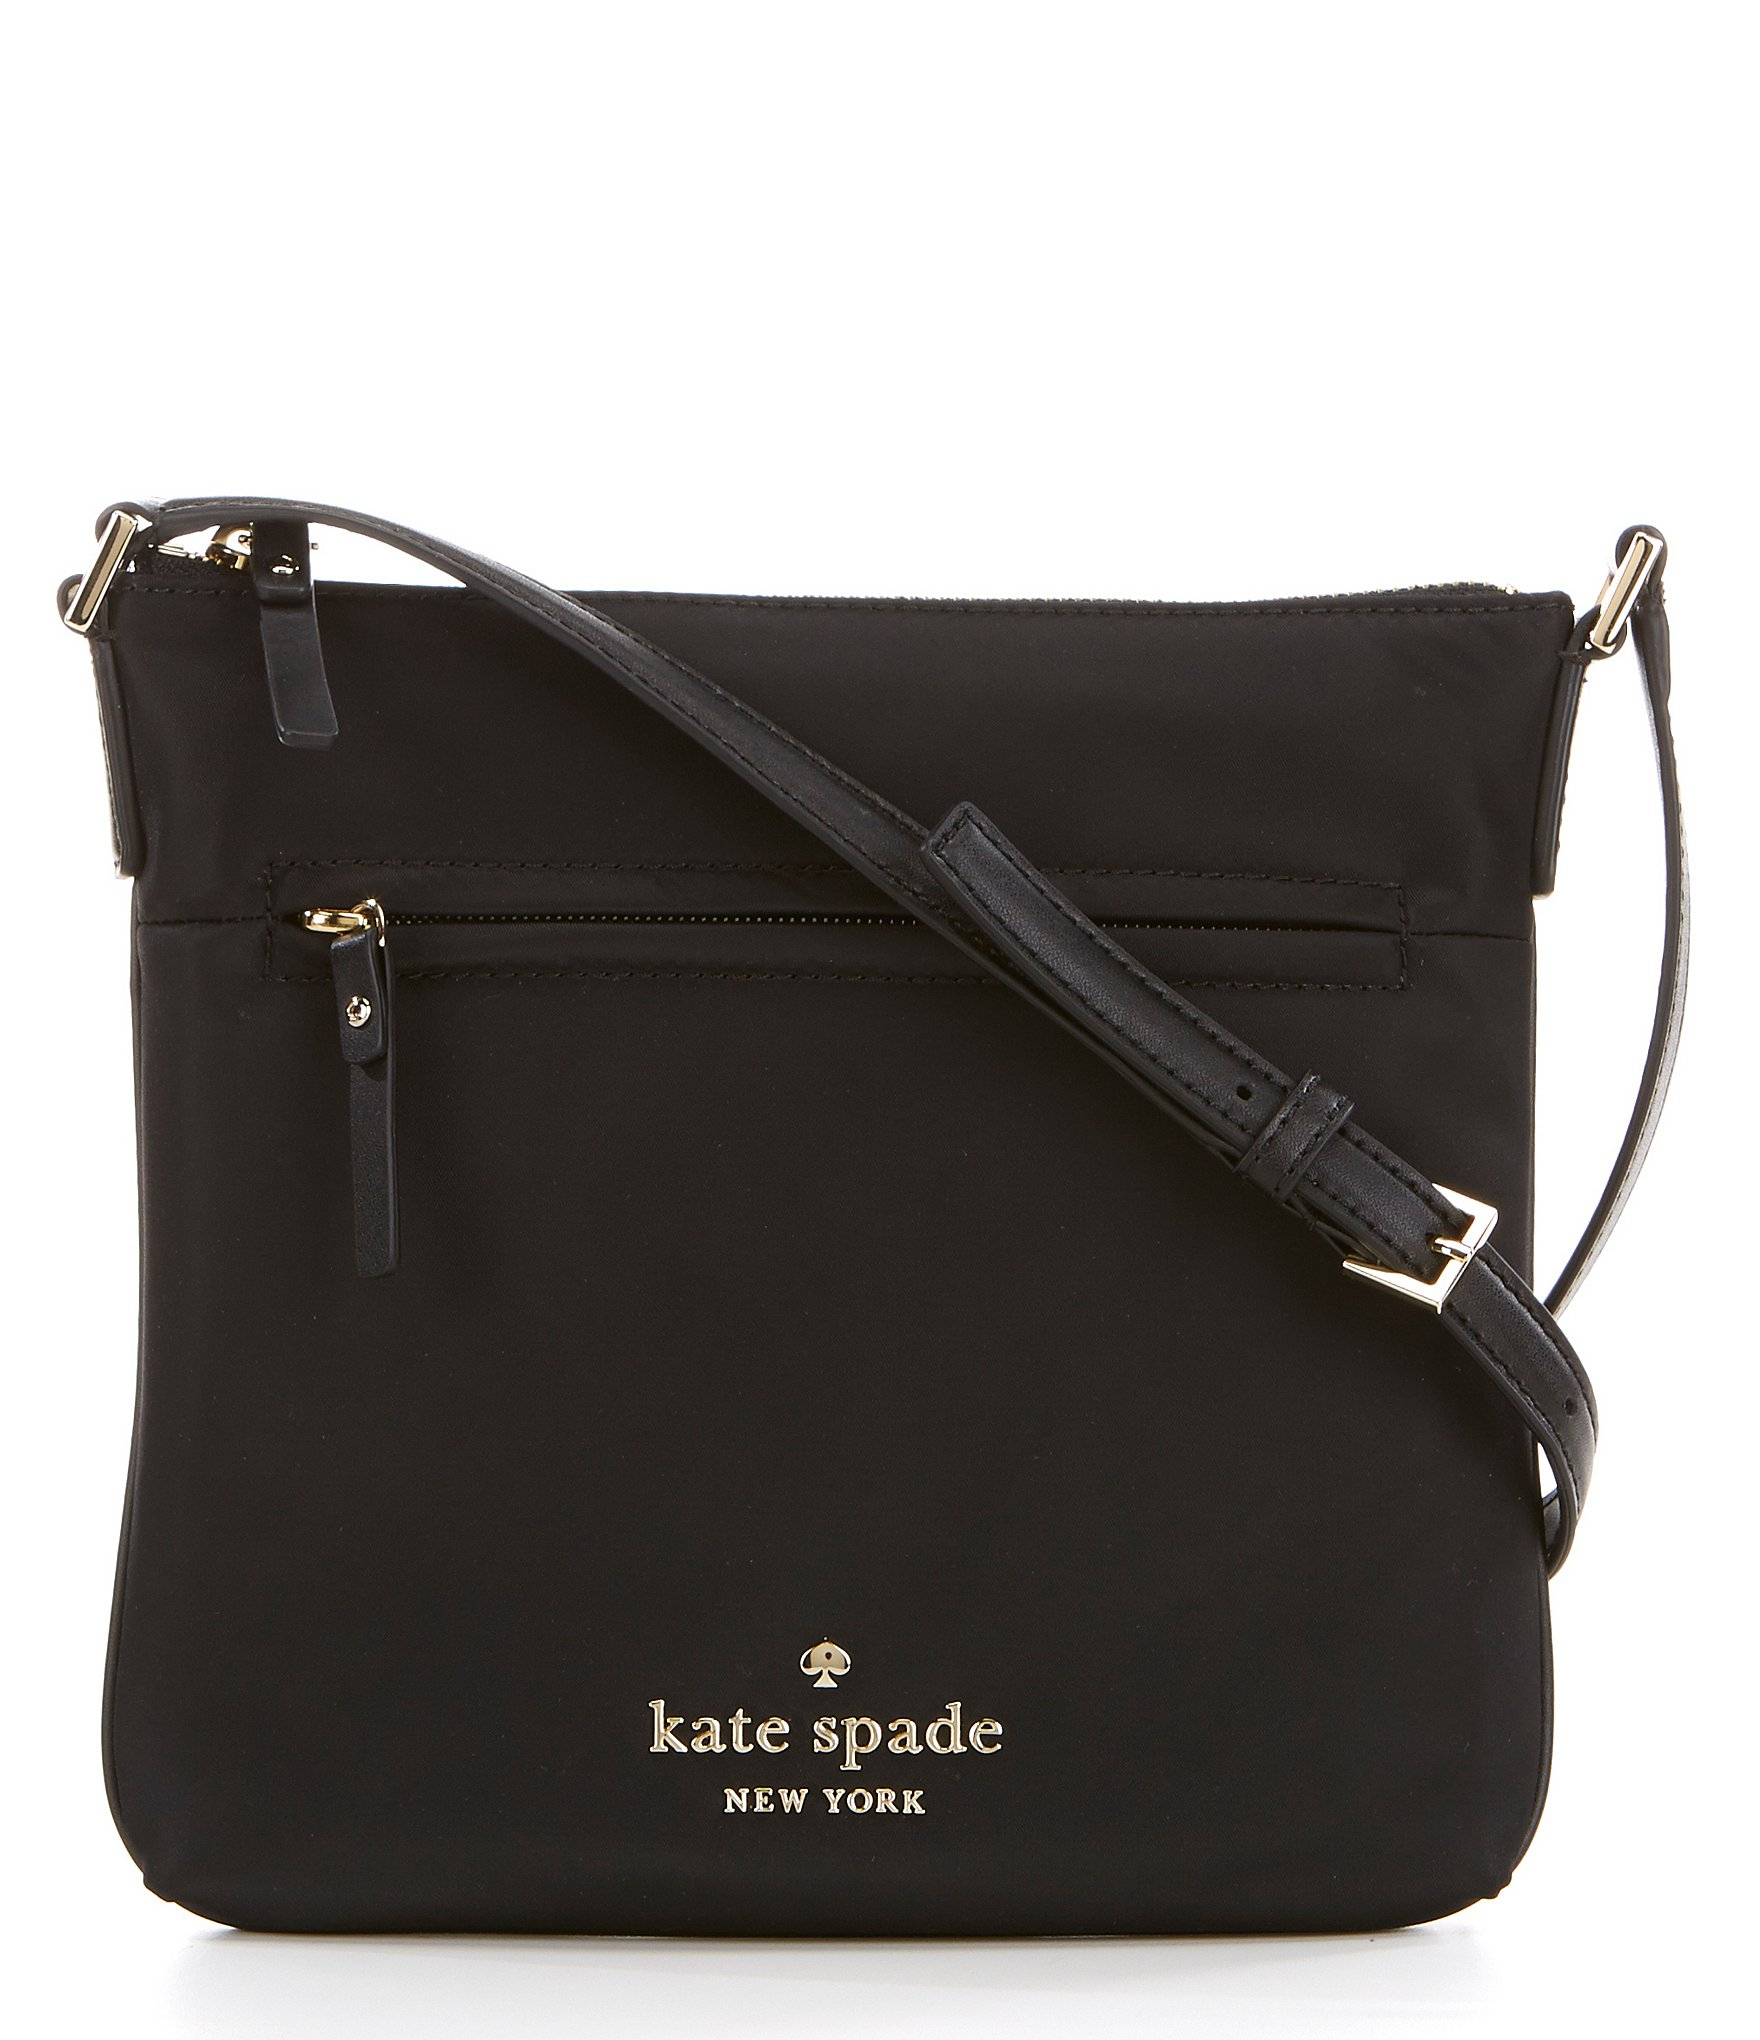 Kate Spade Shoes Review